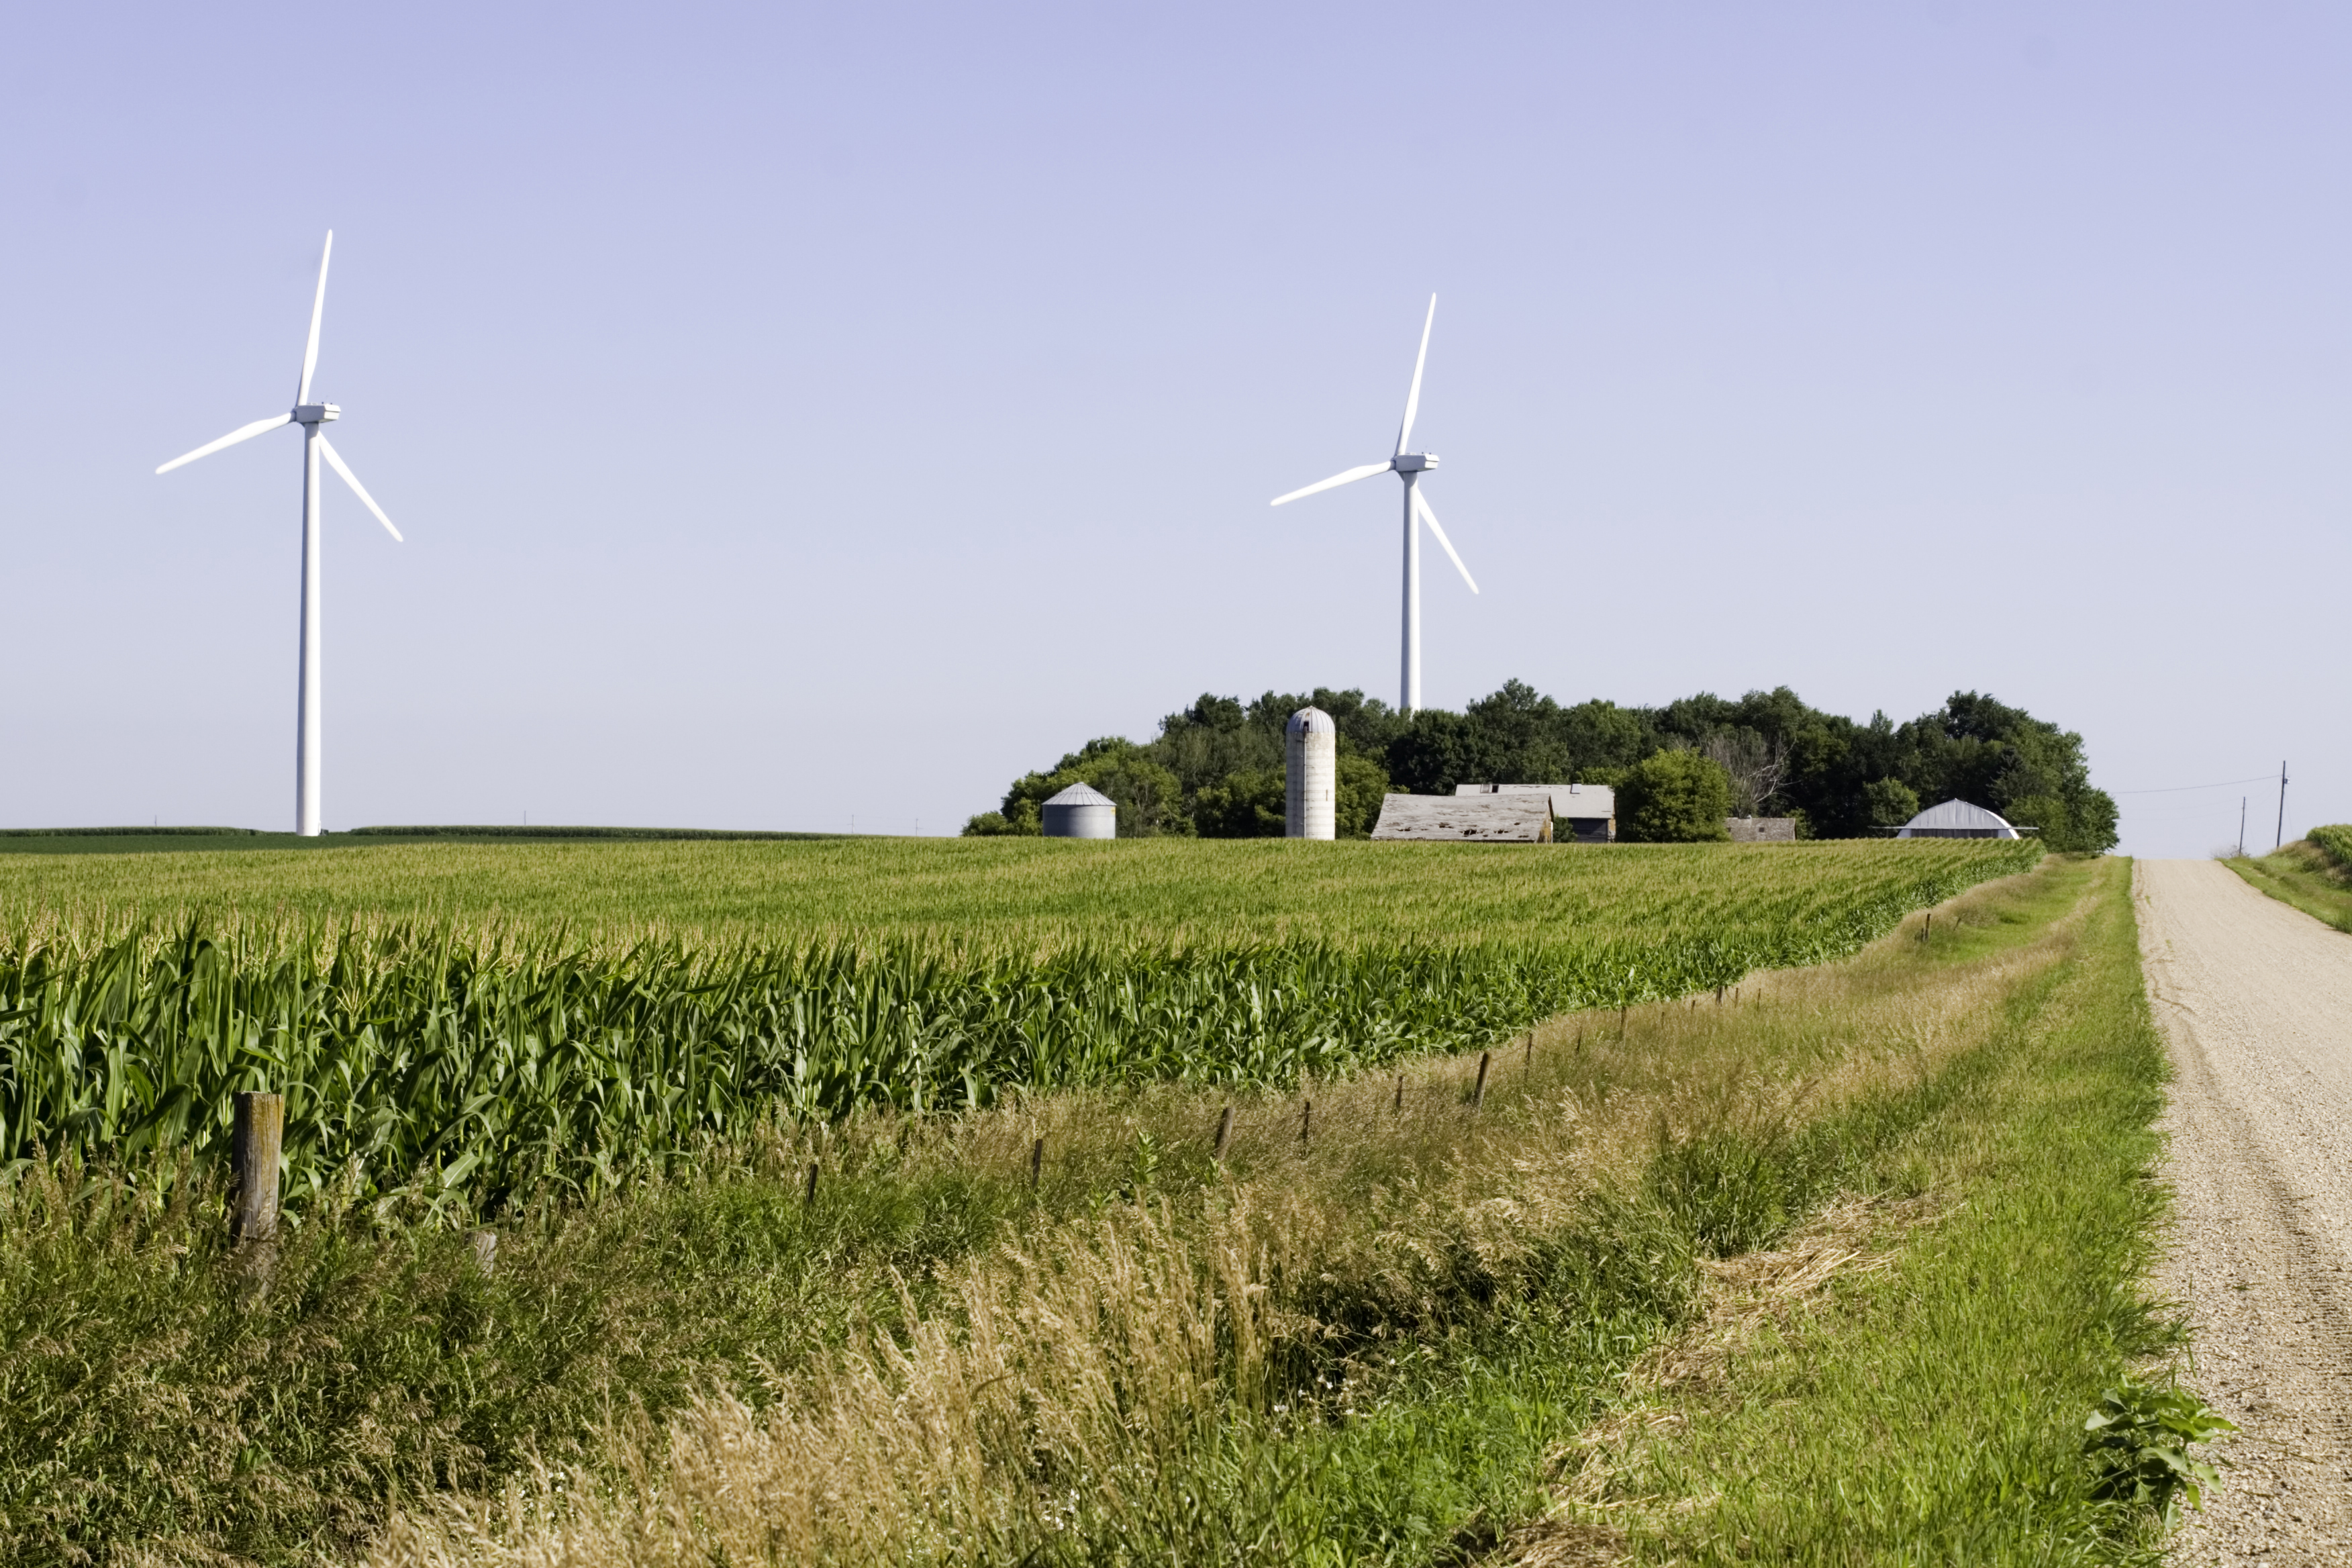 Windmills and Cornfield in Rural Iowa